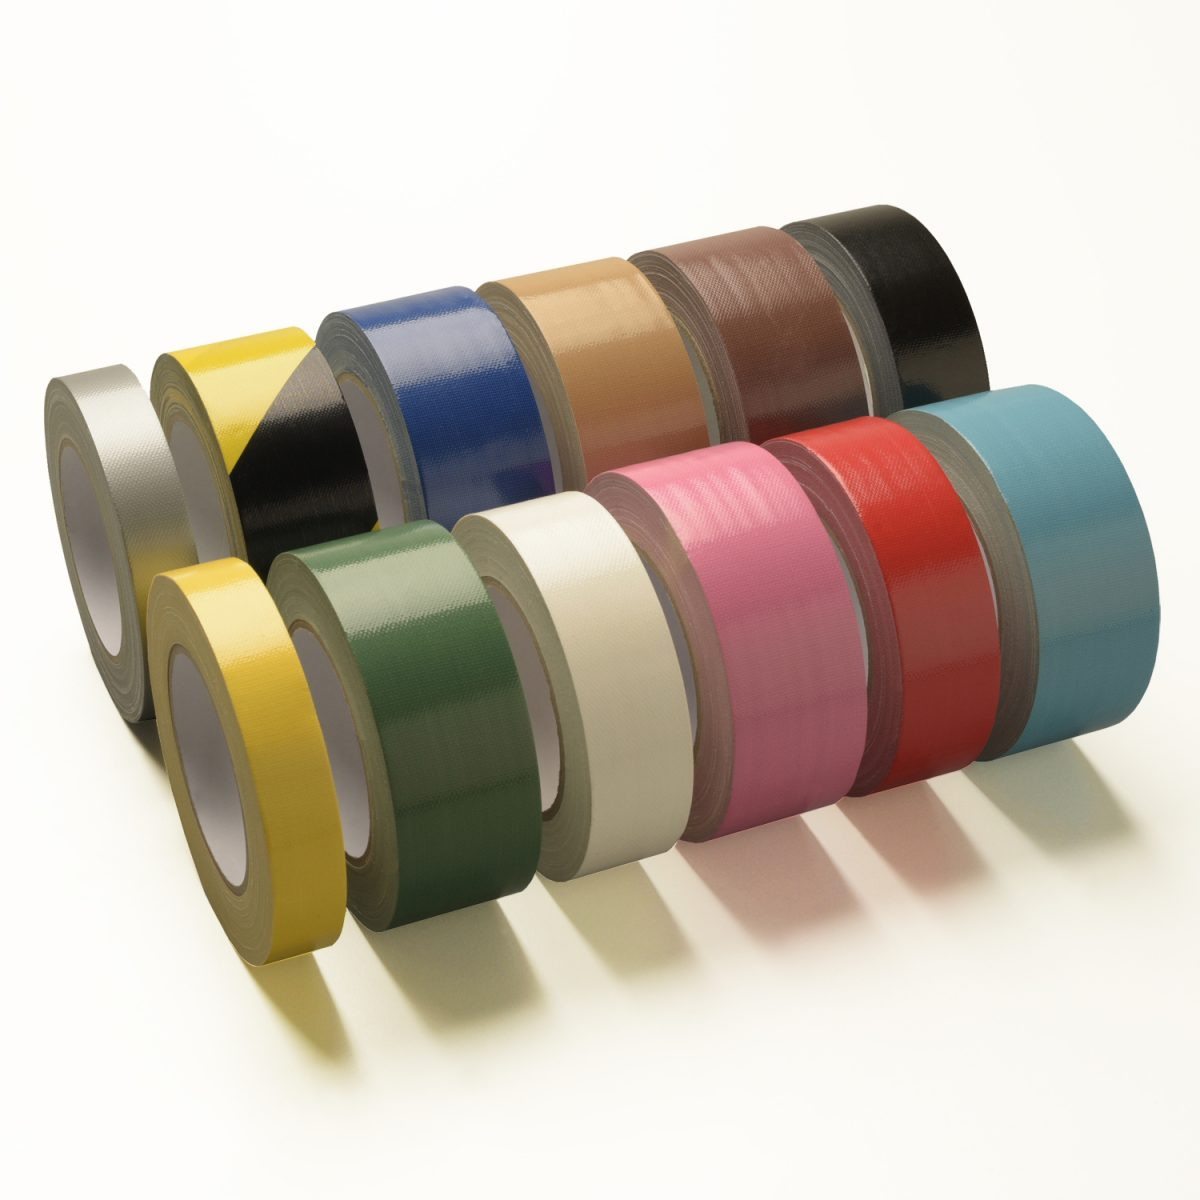 Top 3 Uses for Cloth Tape